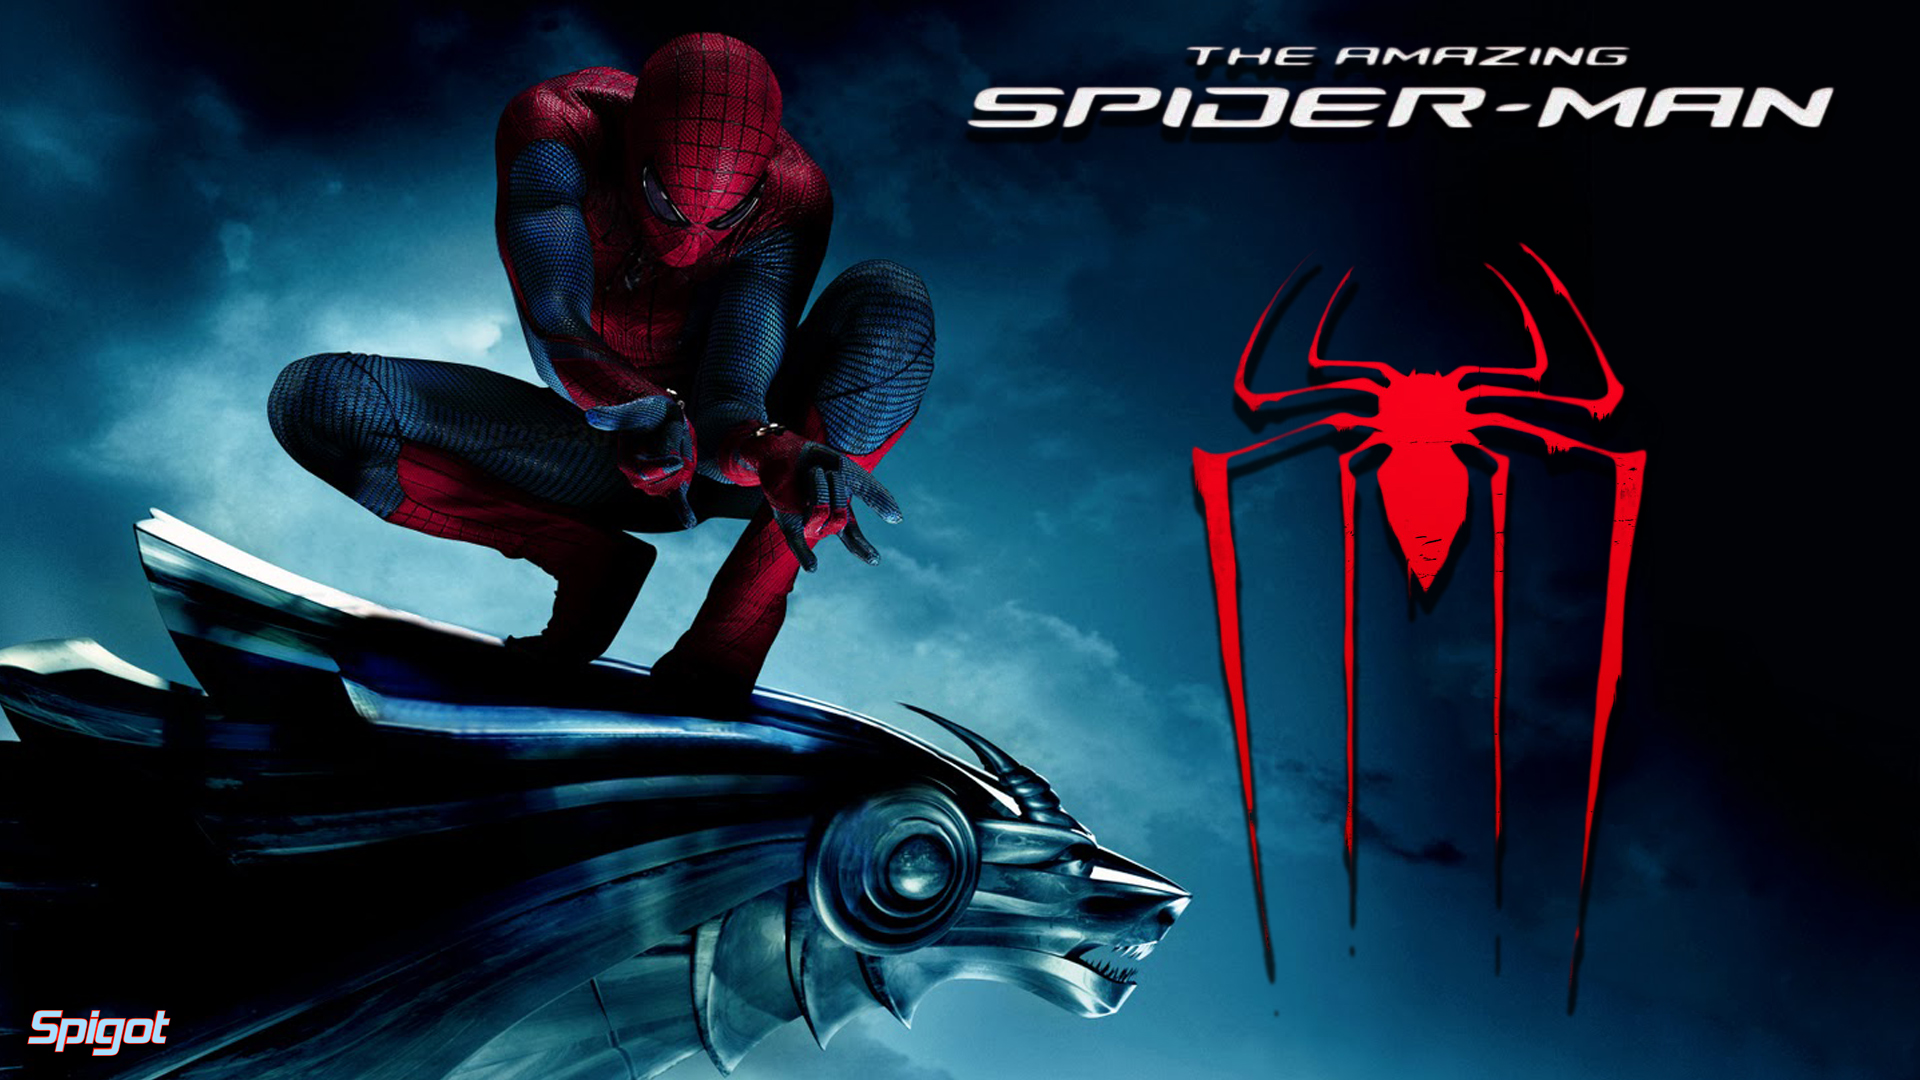 More Amazing Spider Man Wallpapers George Spigot S Blog